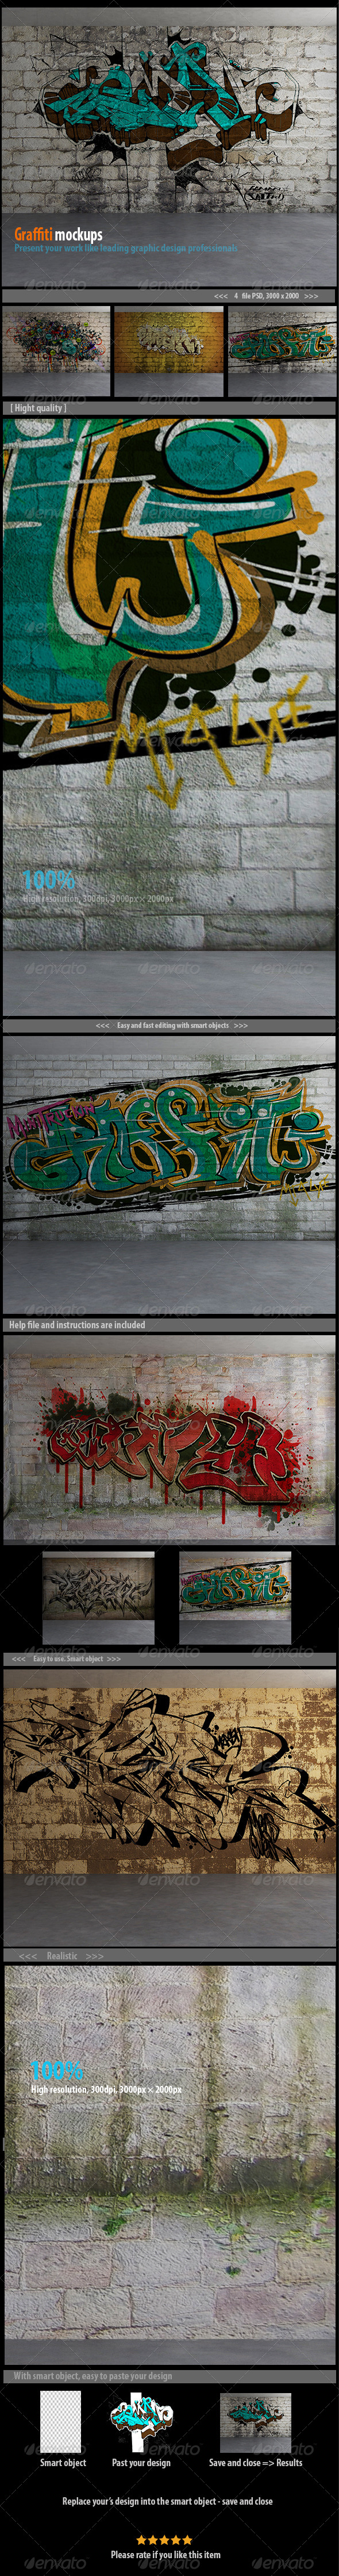 GraphicRiver Graffiti Mockups 7953519